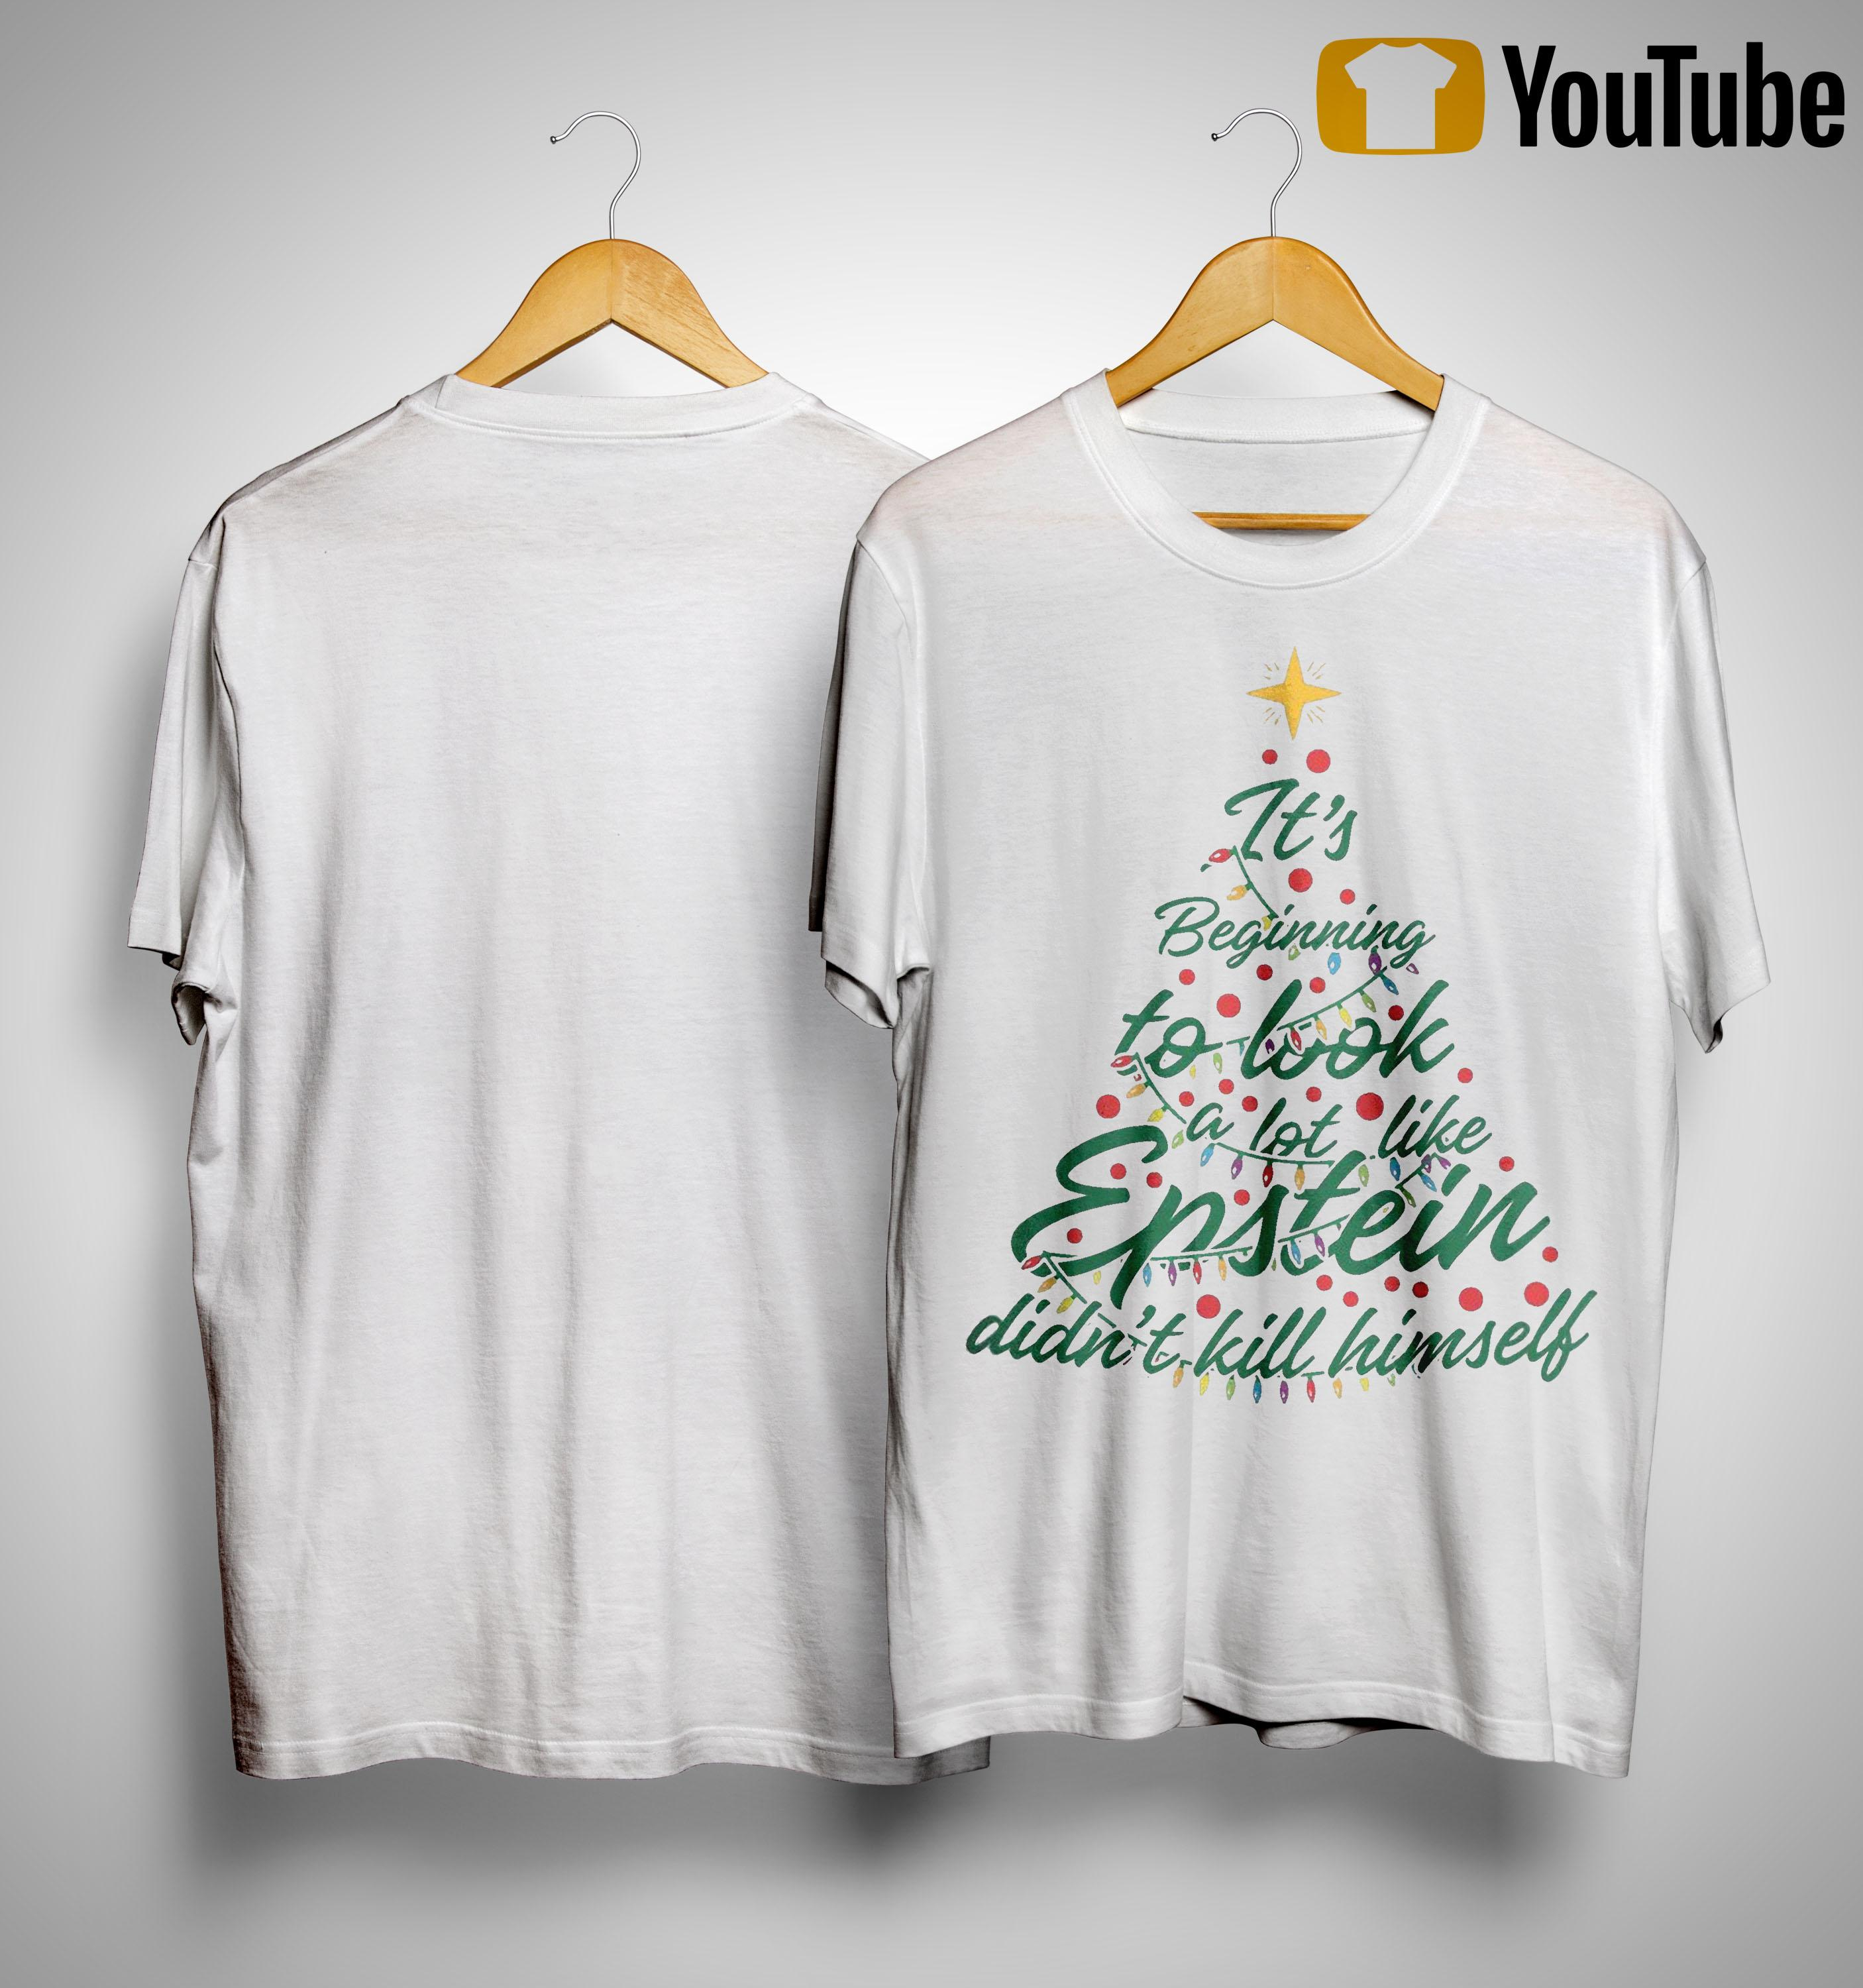 It's Beginning To Look A Lot Like Epstein Didn't Kill Himself Shirt